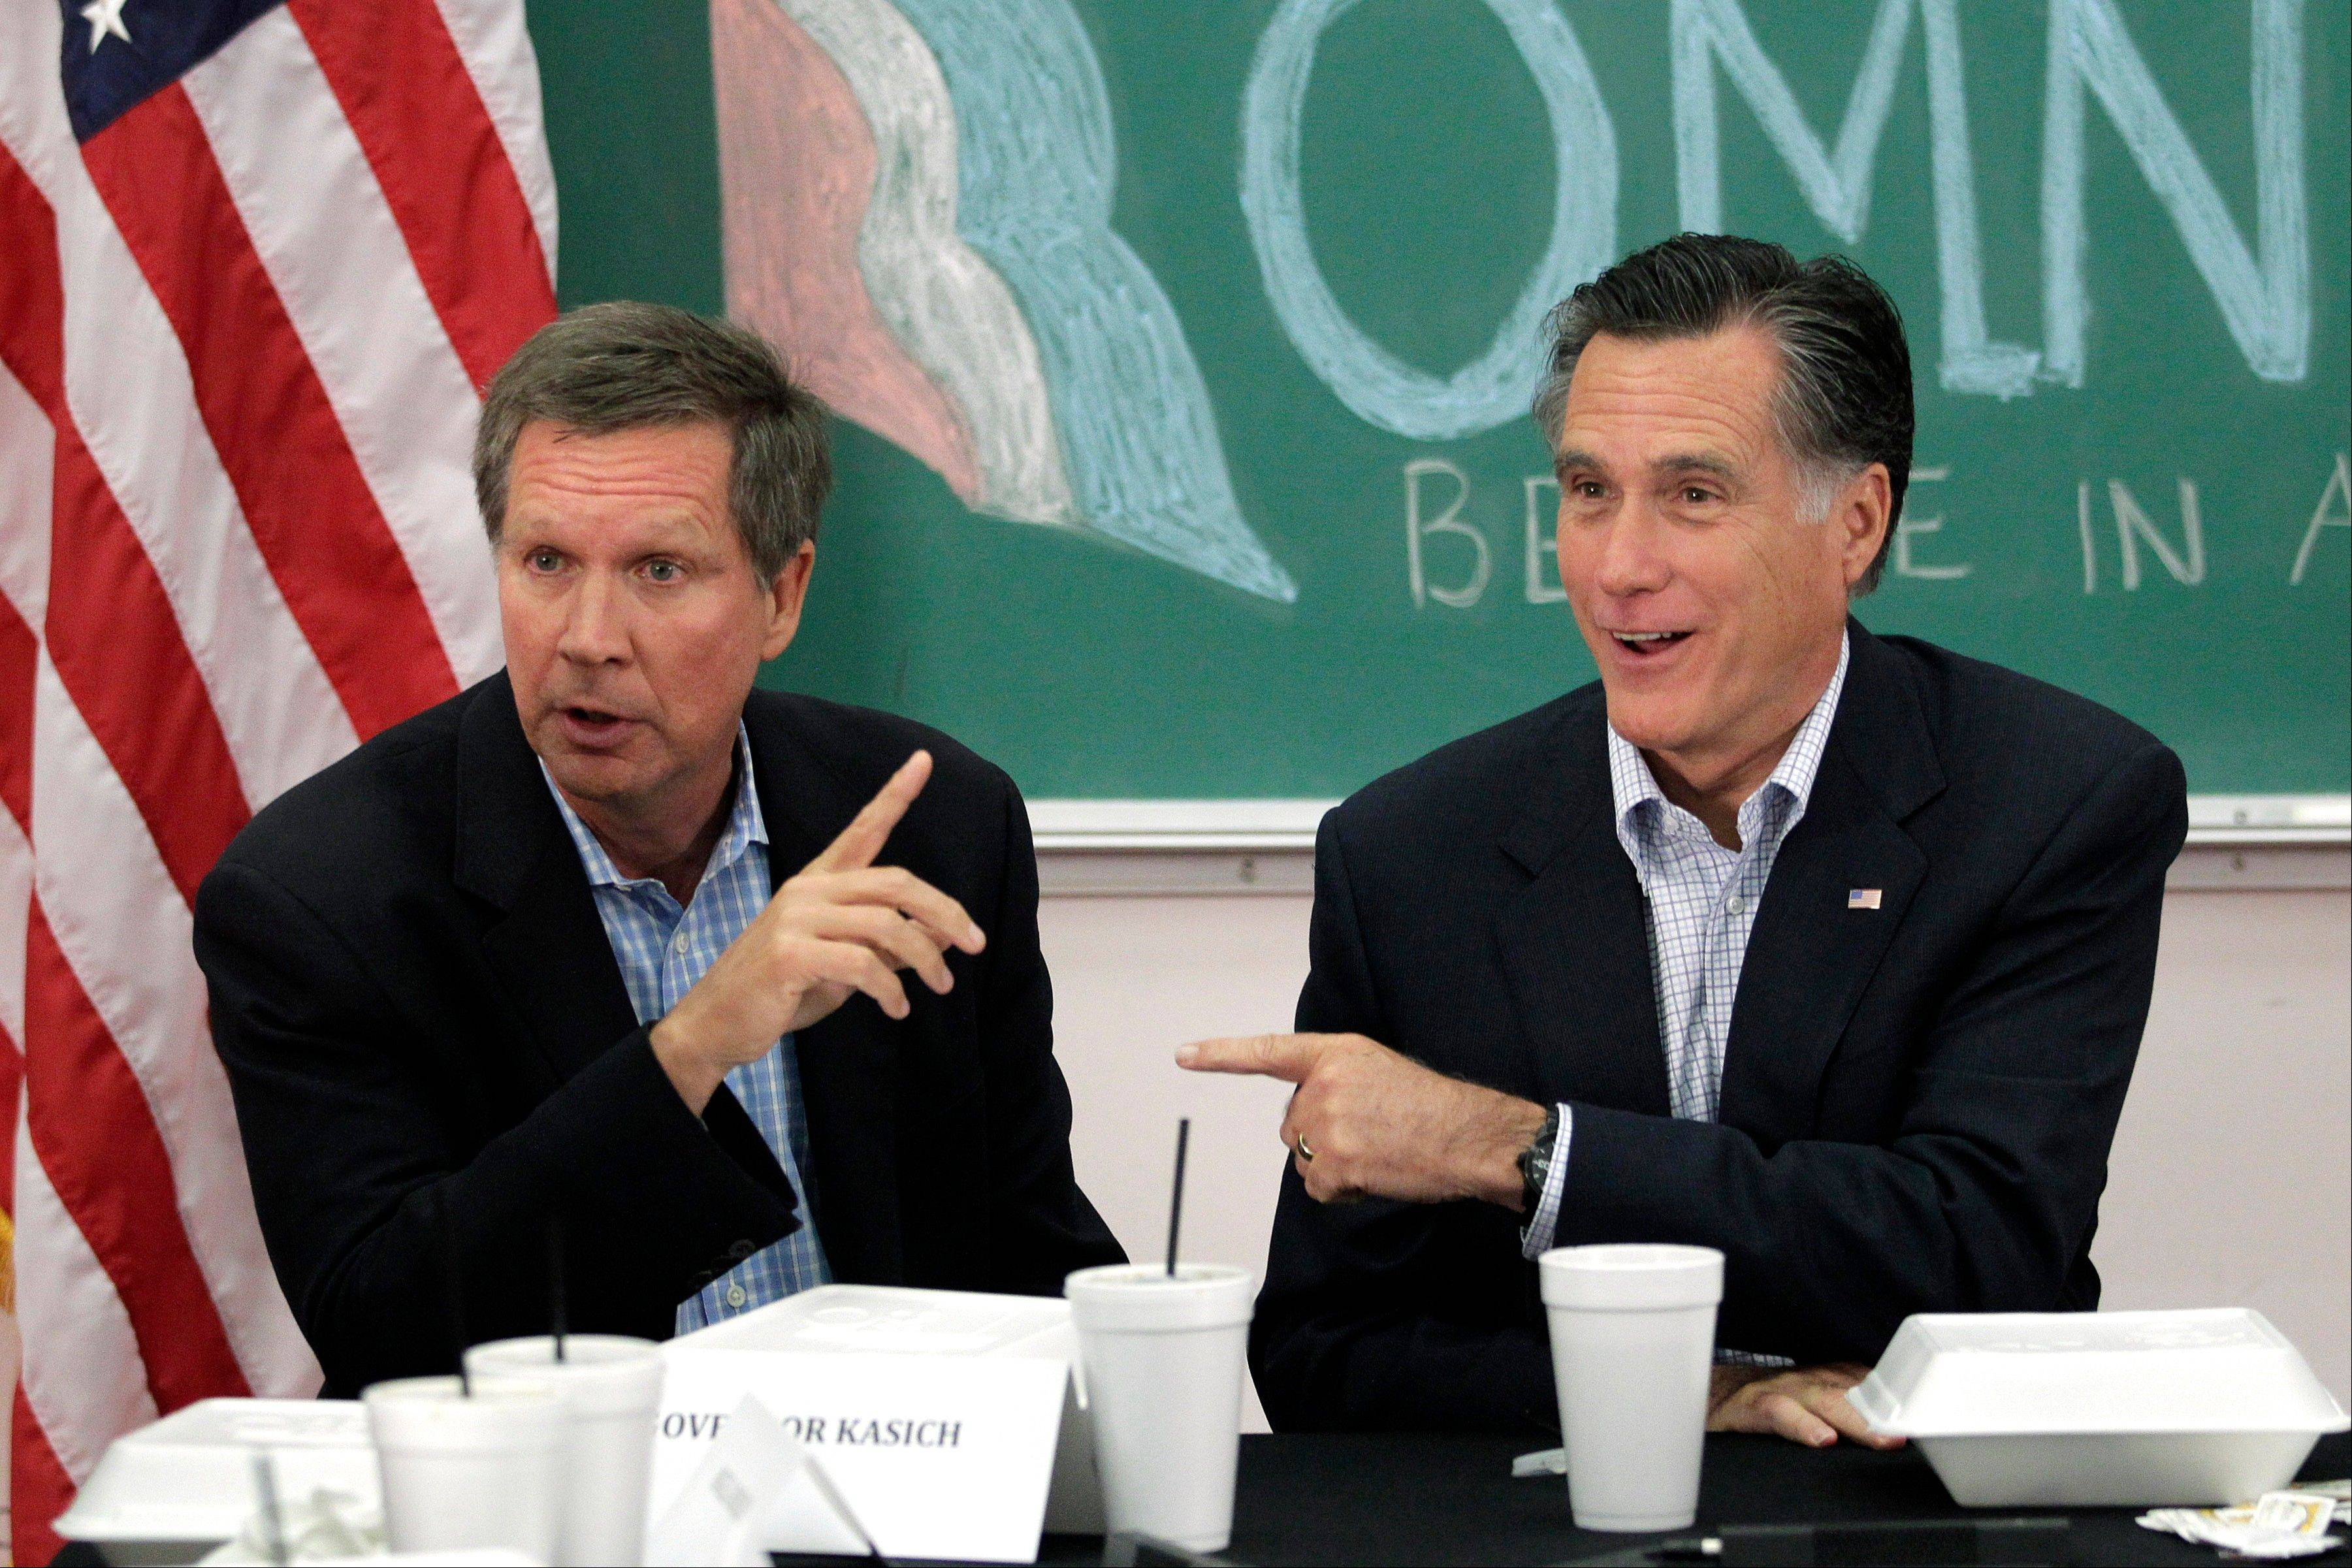 Republican presidential candidate and former Massachusetts Gov. Mitt Romney and Ohio Gov. John Kasich participate in a round-table discussion in Westerville, Ohio. President Barack Obama and his supporters point to the U.S. auto comeback and a manufacturing rebirth. Kasich lauded his own policies in a speech at the GOP convention, noting he'd erased a projected $8 billion deficit without a statewide tax increase and Ohio has moved from 48th to 4th in job creation. His office says 122,500 jobs have been created since he took office in January 2011.